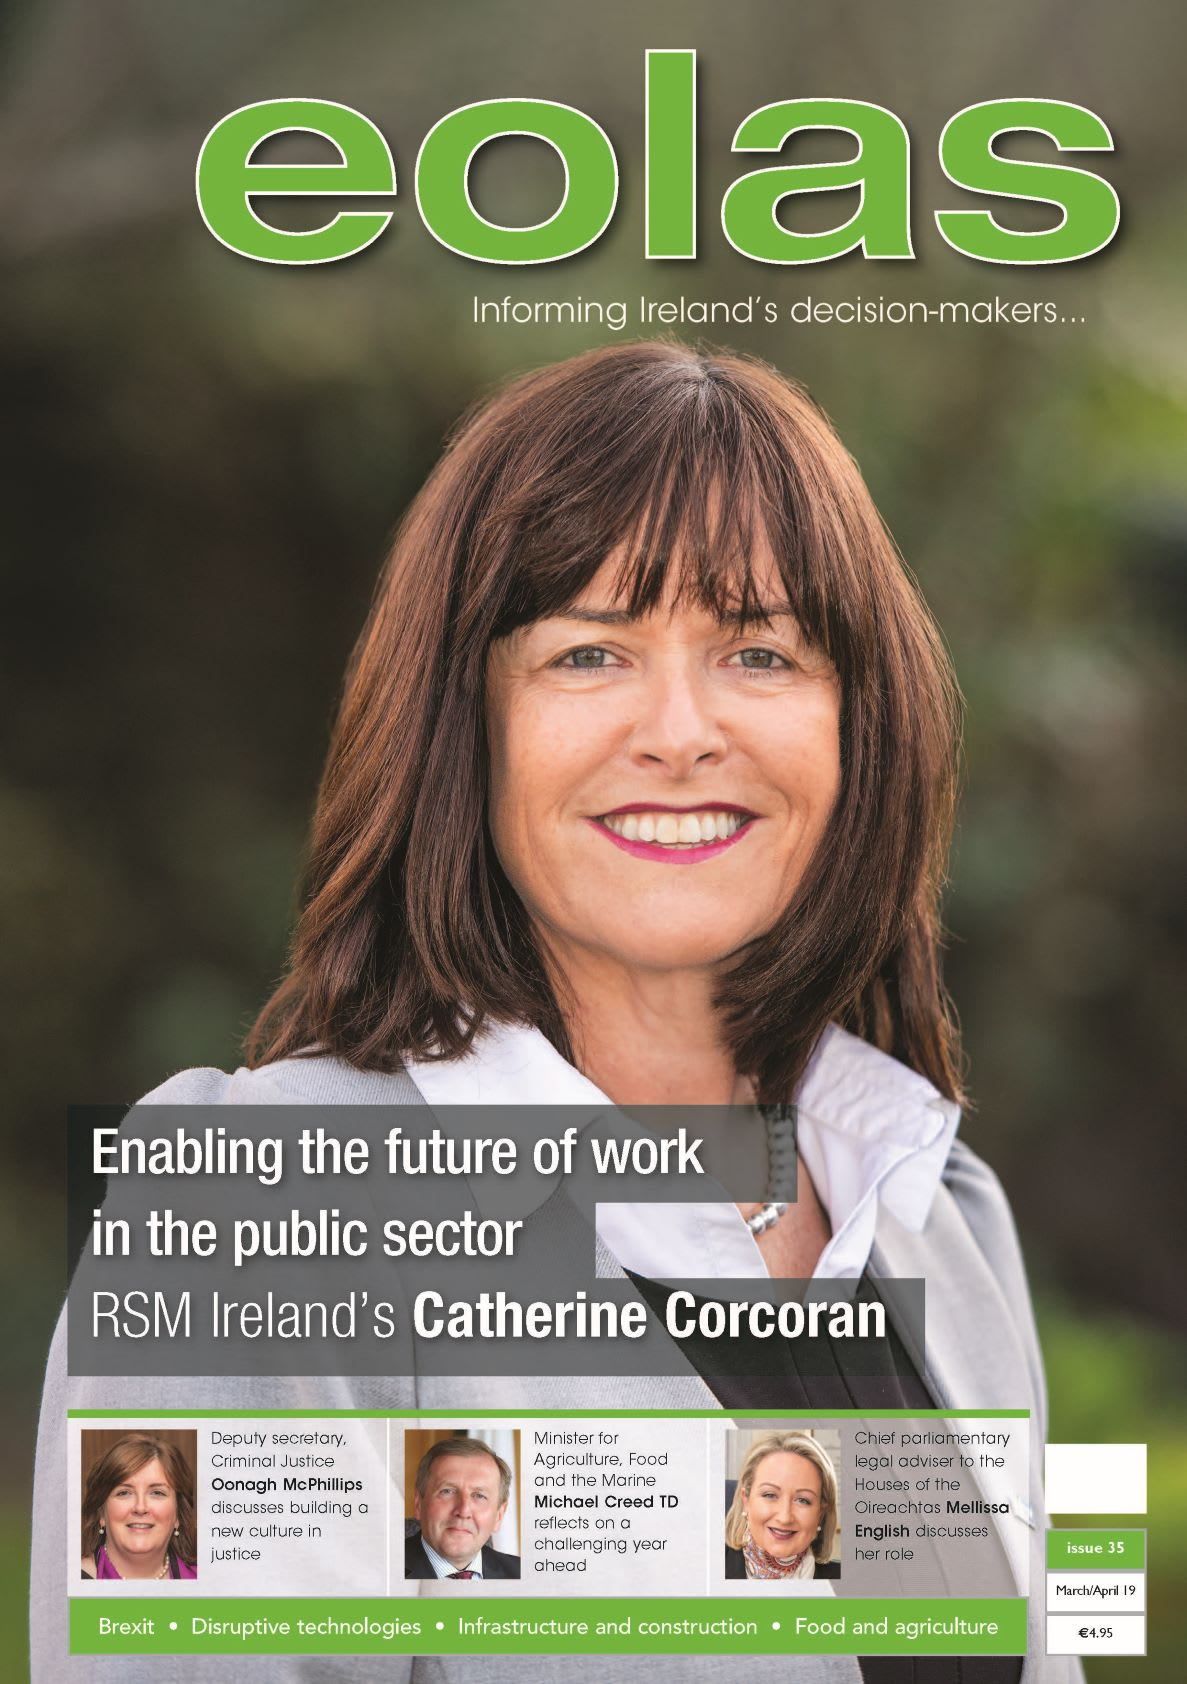 Eolas Magazine cover story - Enabling the future of work in the public sector